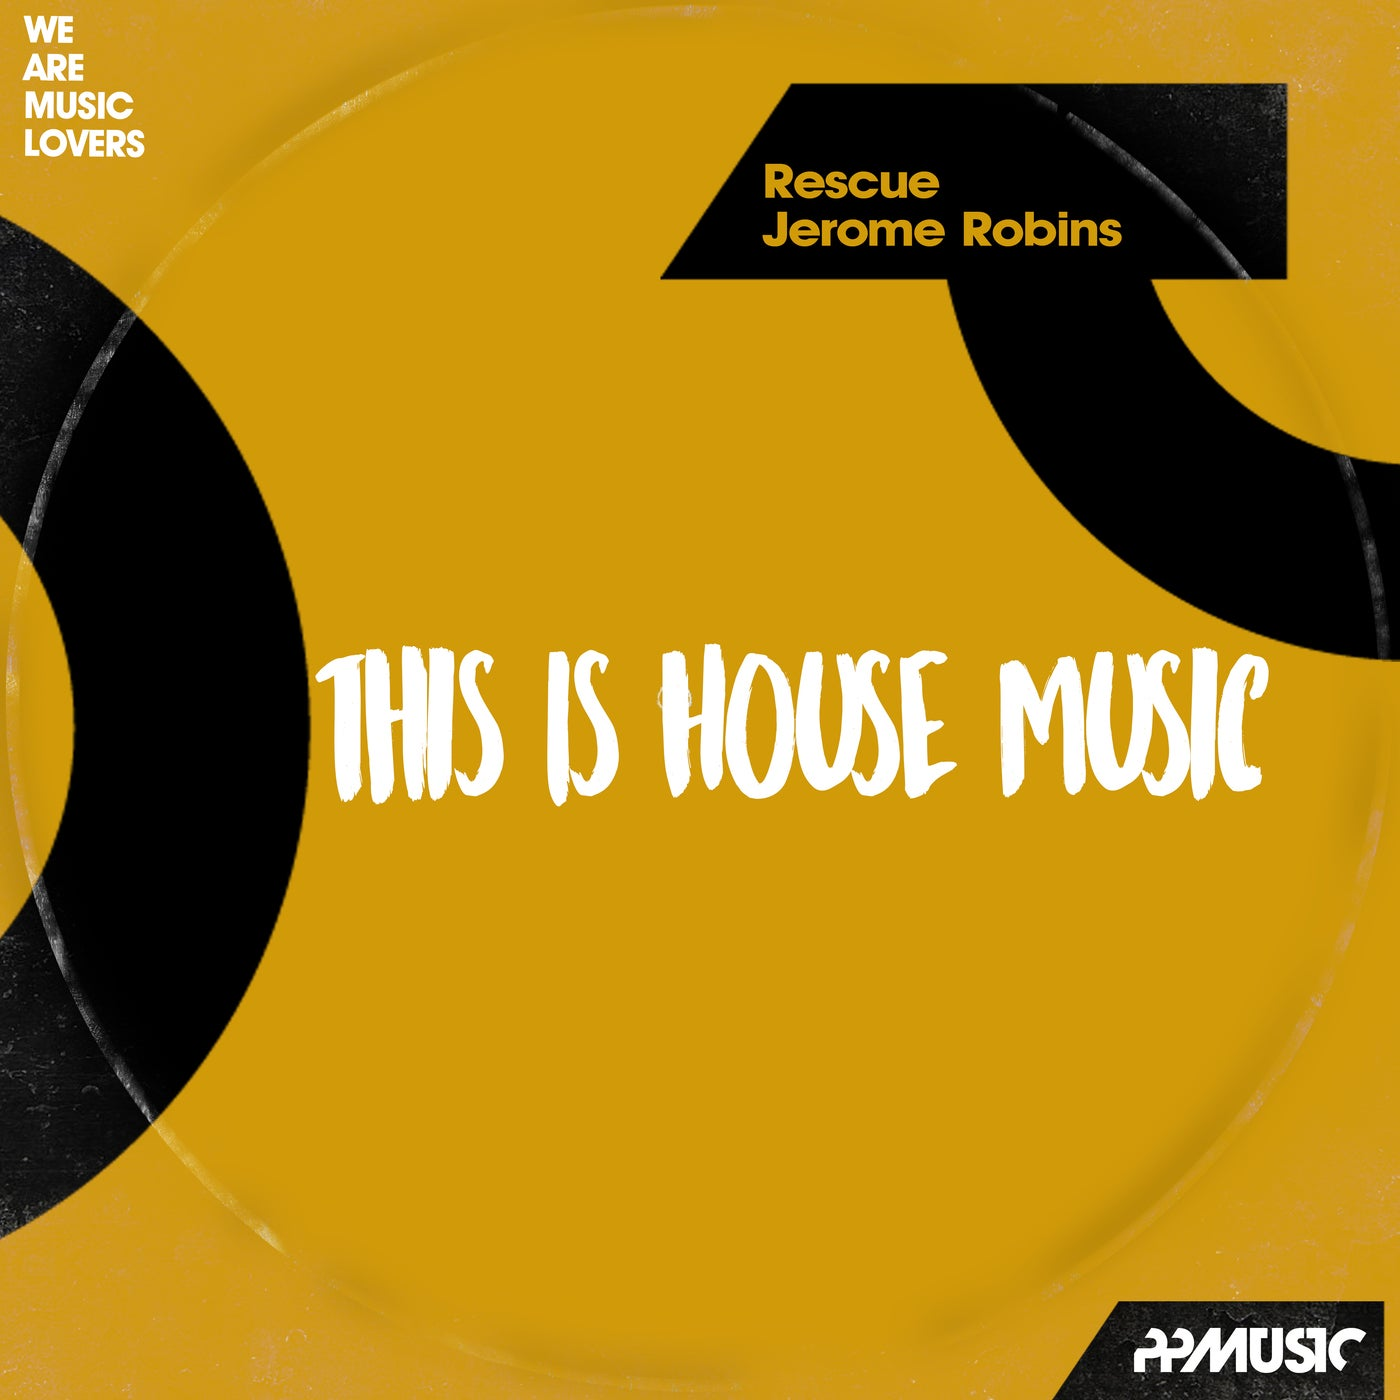 This Is House Music (Original Mix)